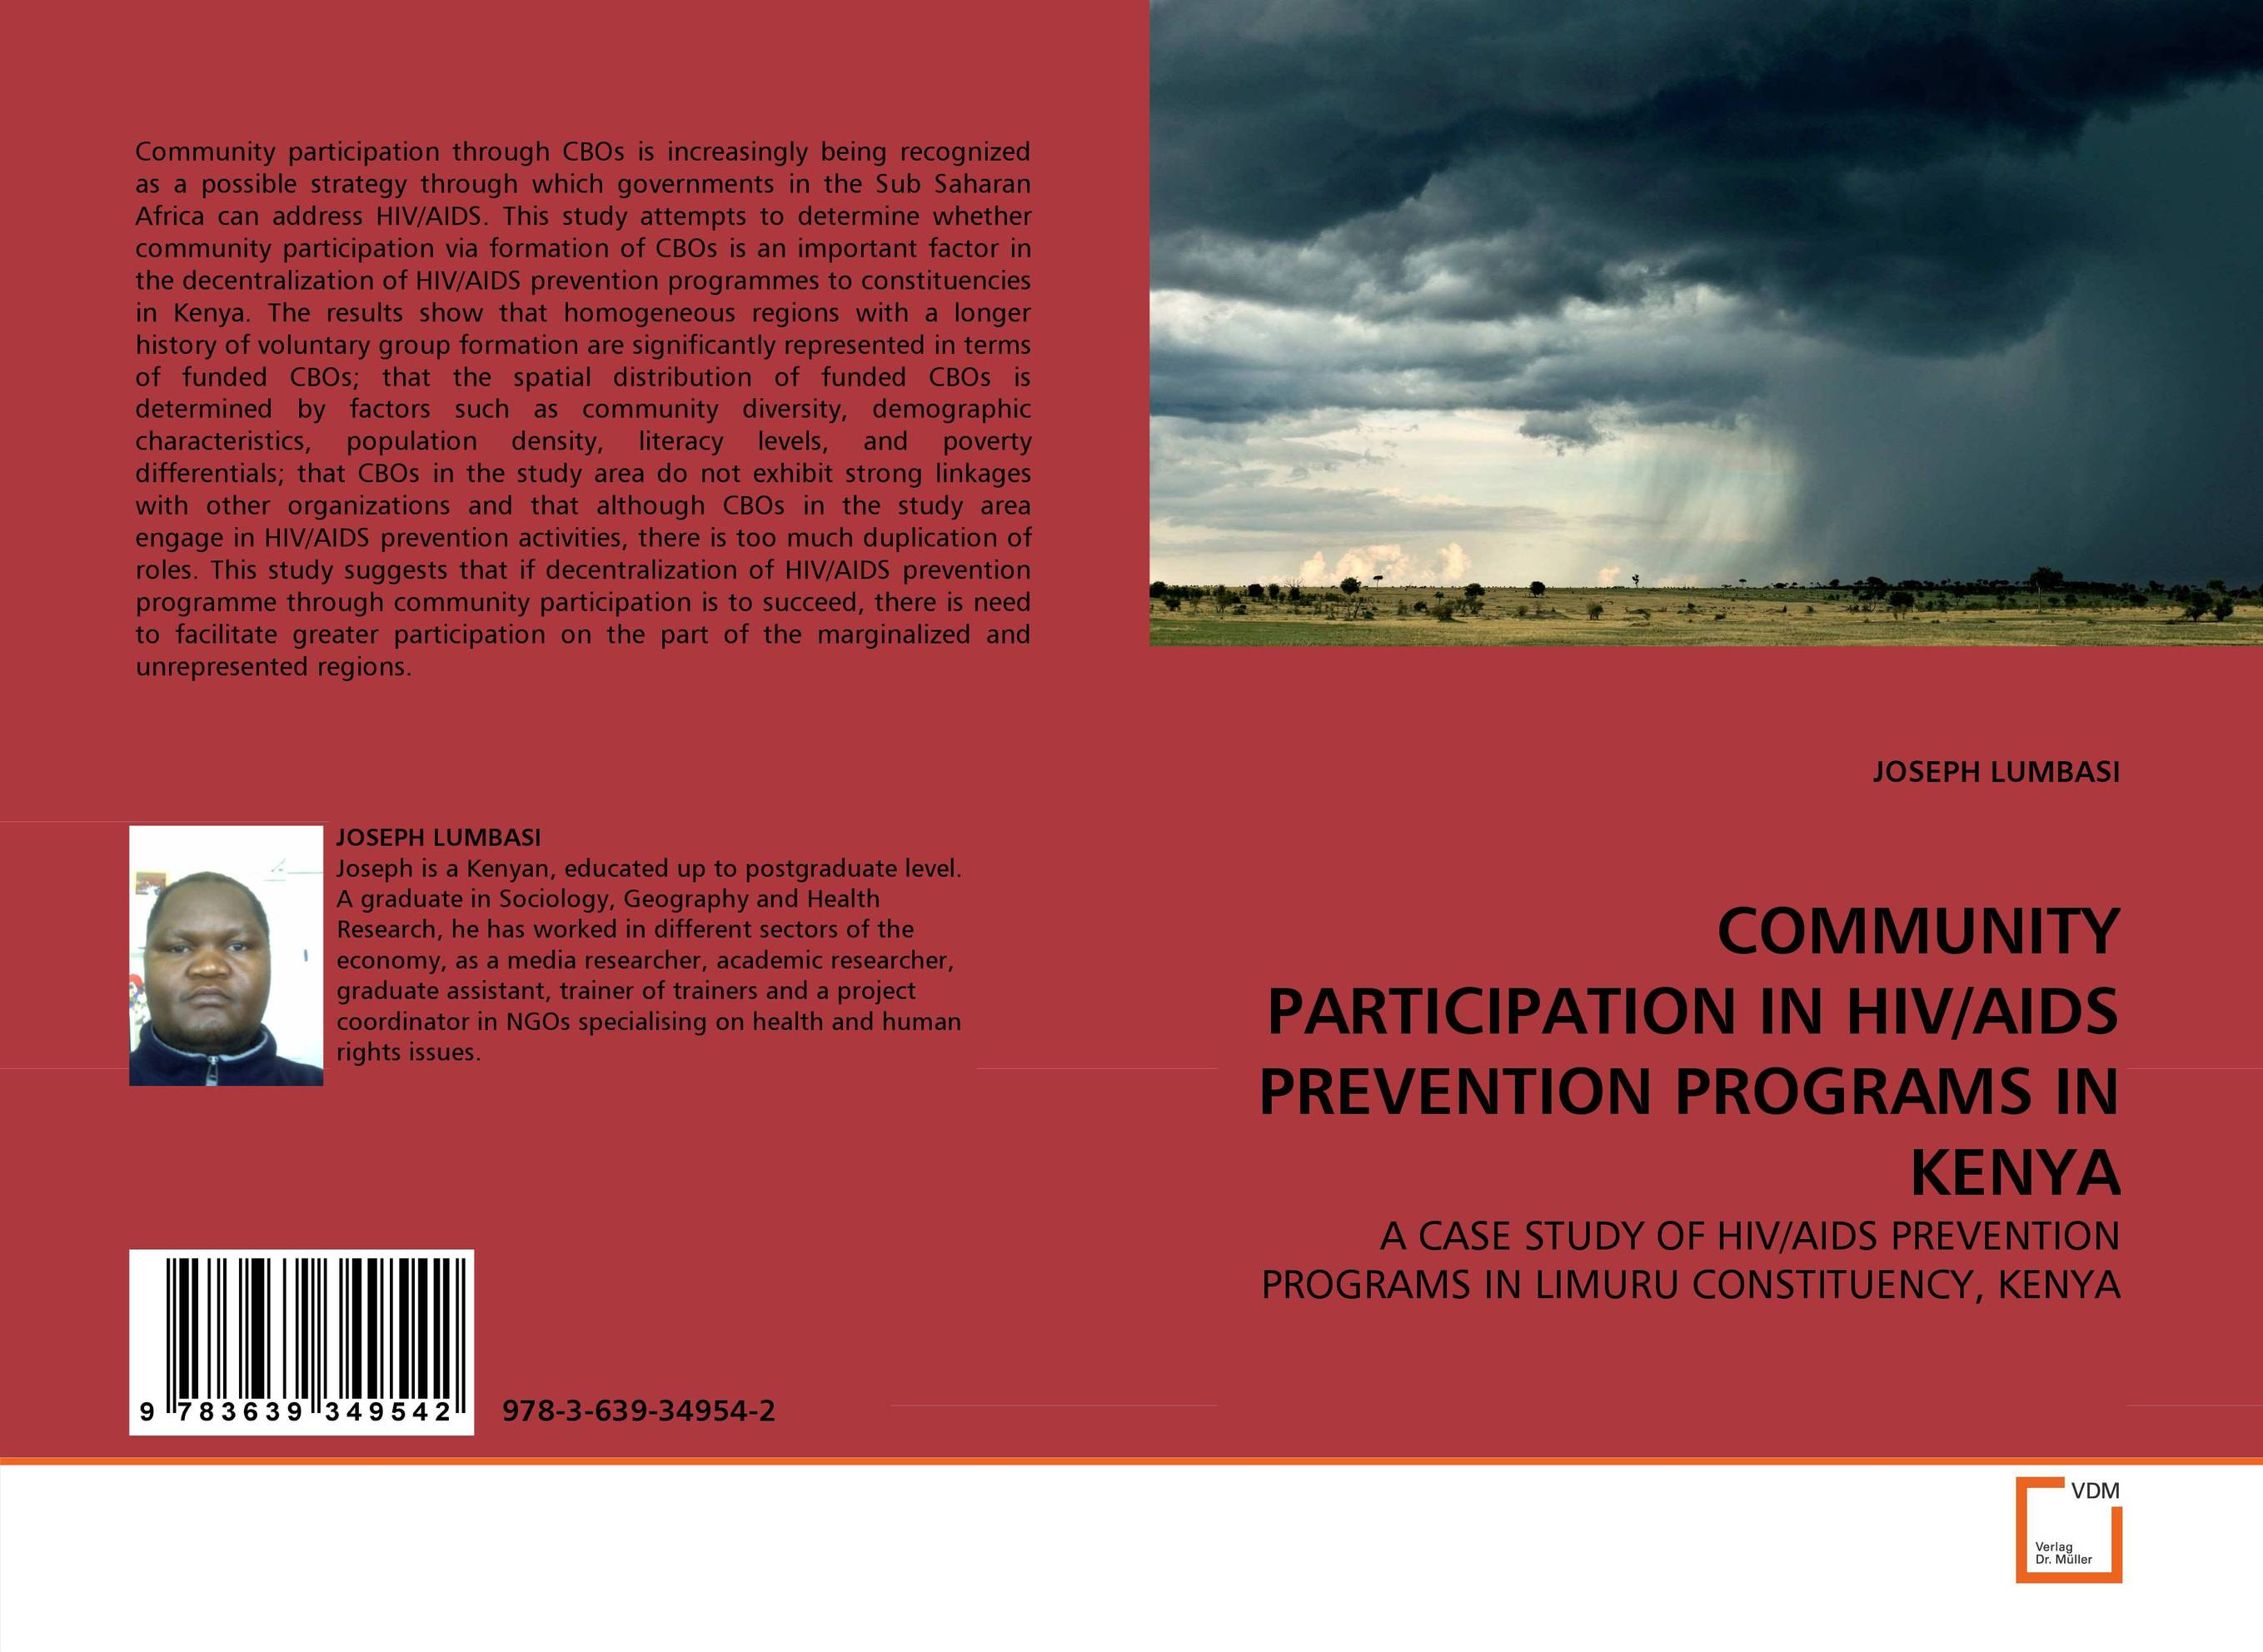 COMMUNITY PARTICIPATION IN HIV/AIDS PREVENTION PROGRAMS IN KENYA an overview on hiv aids